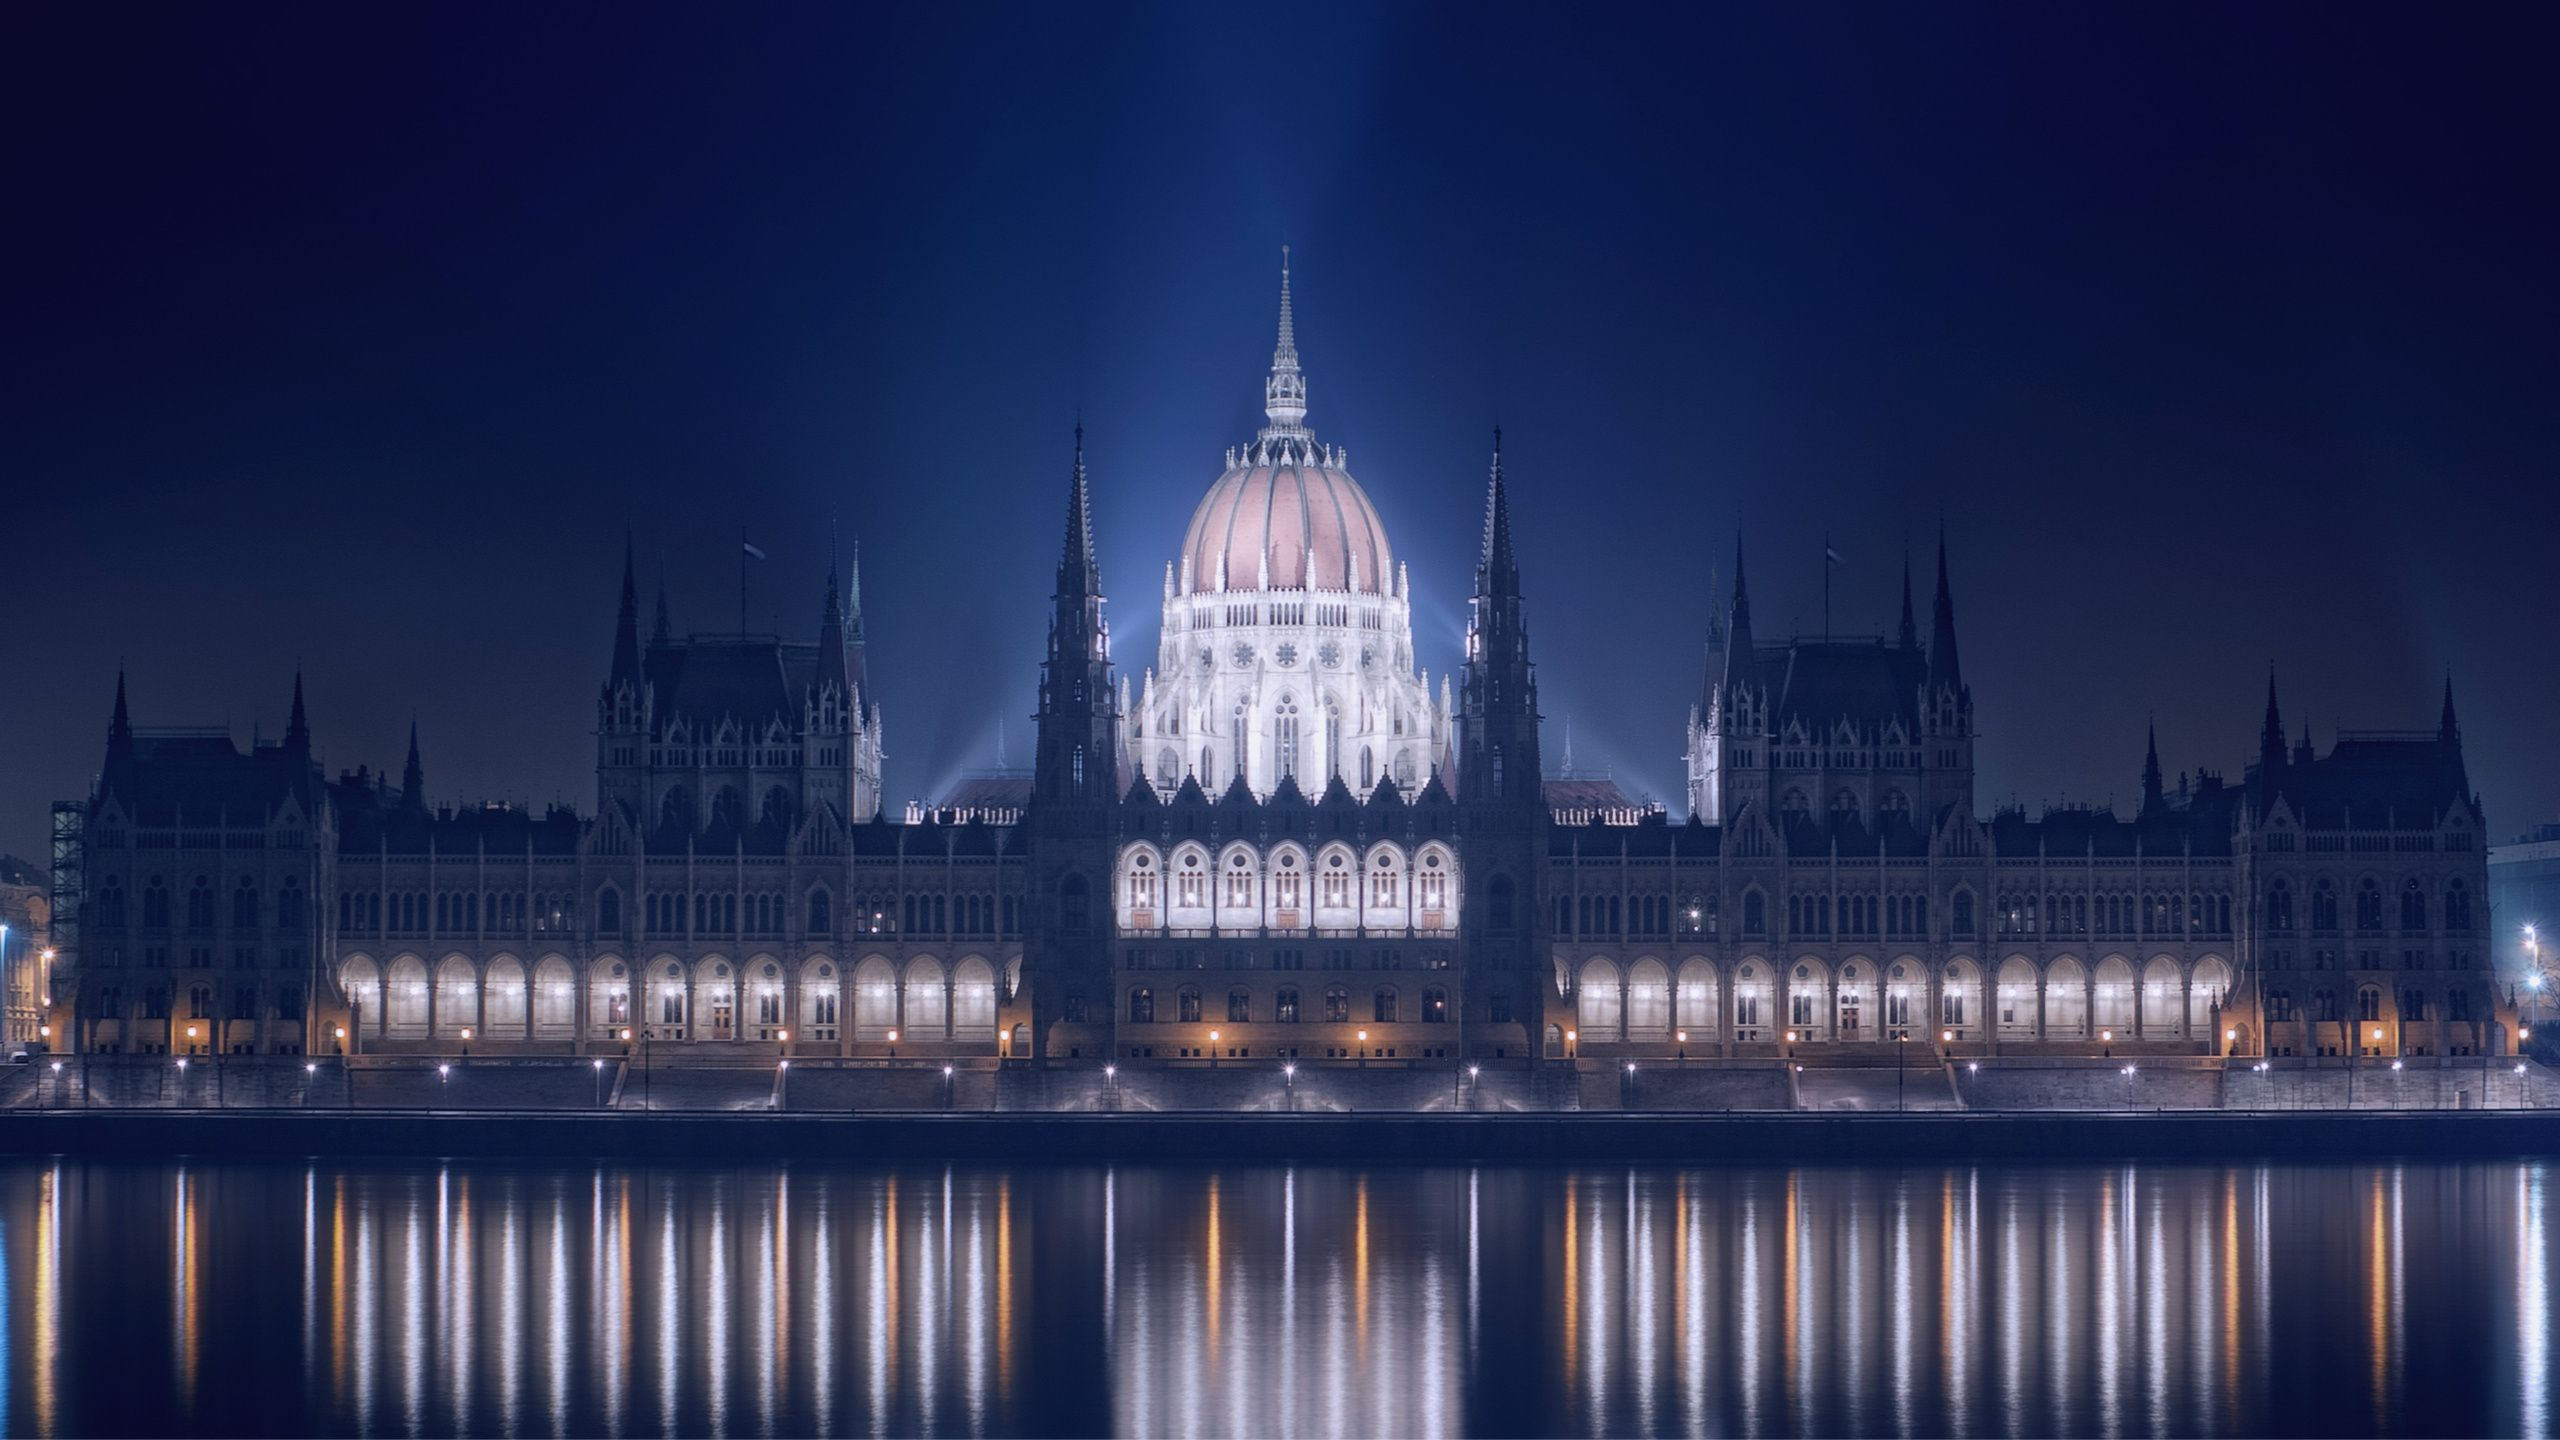 Hungary, Budapest, night, building, wallpapers , Pc backgrounds, free photos - HD wallpaper desktop backgrounds